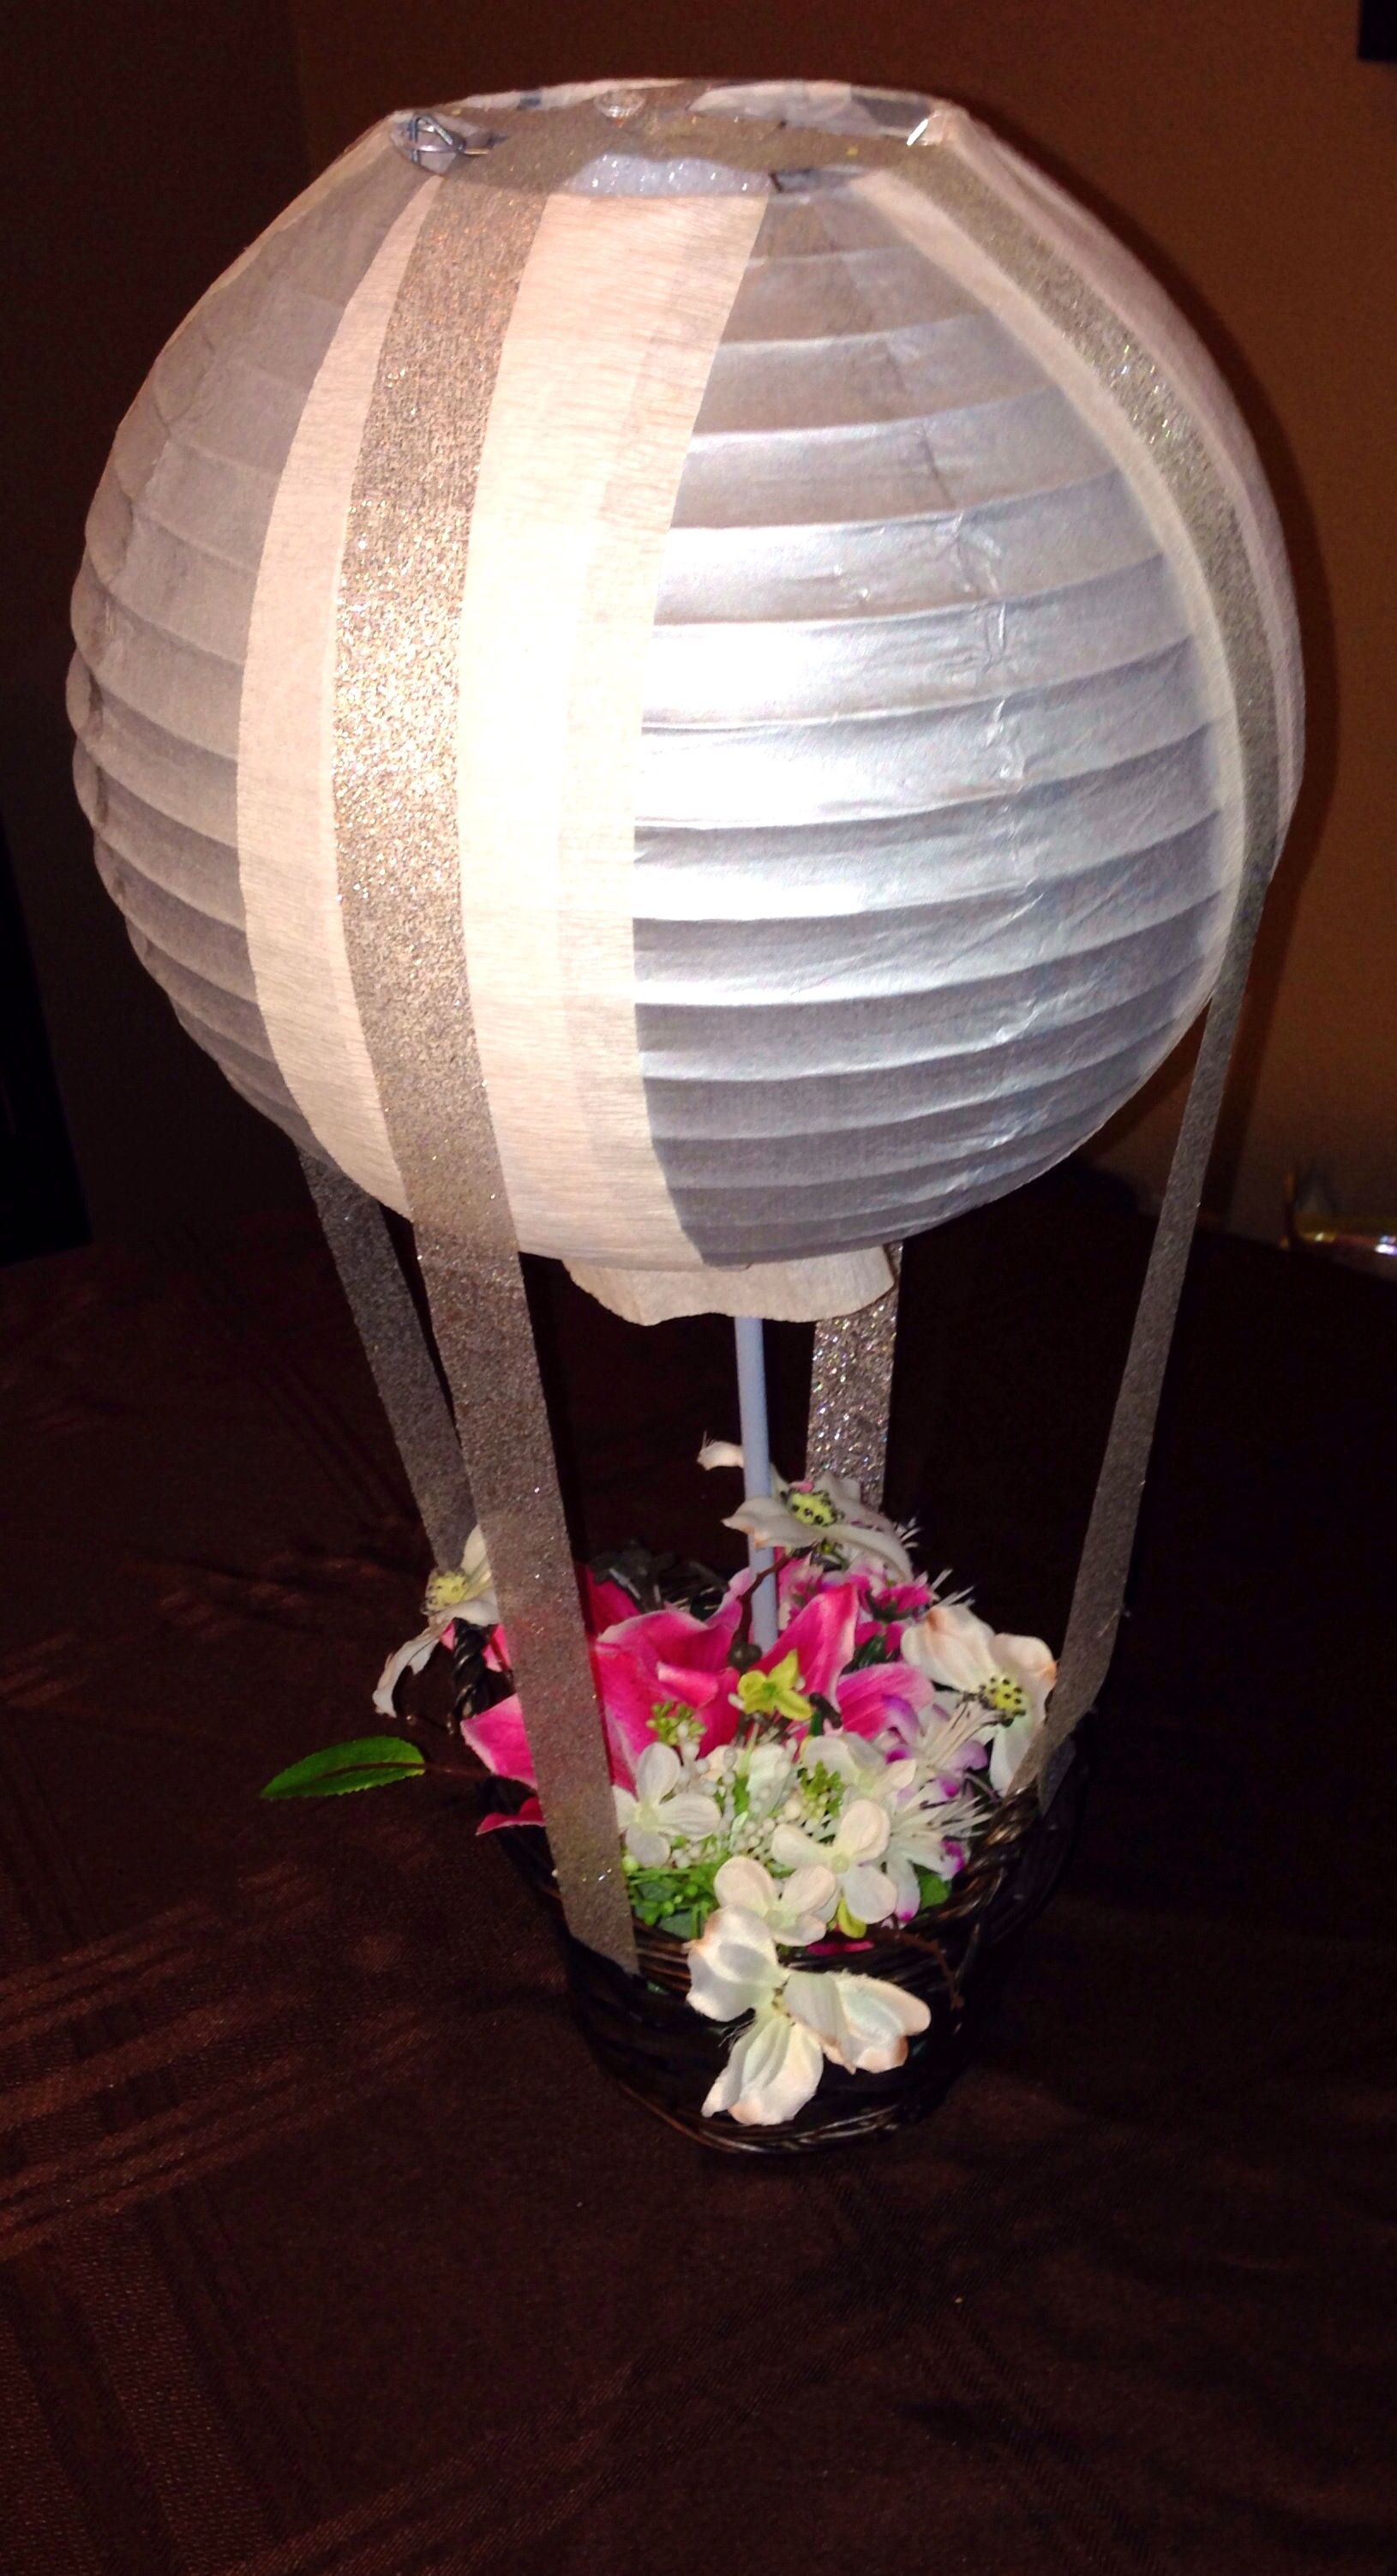 Diy Hot Air Balloon Centerpieces Can Use Lit Paper Lantern And